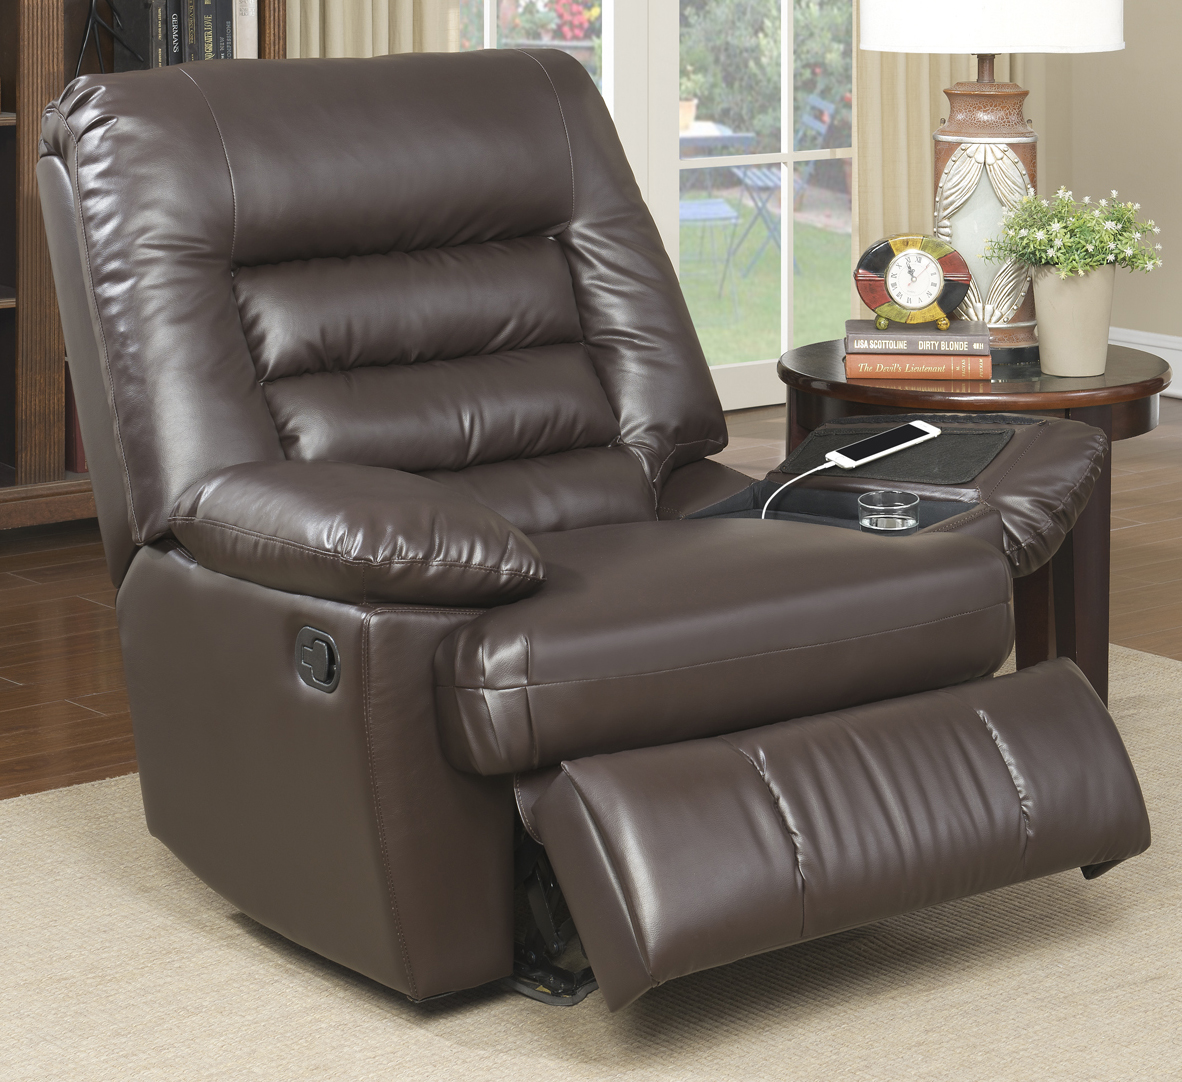 Elegant Serta Big U0026 Tall Memory Foam Massage Recliner, Multiple Colors